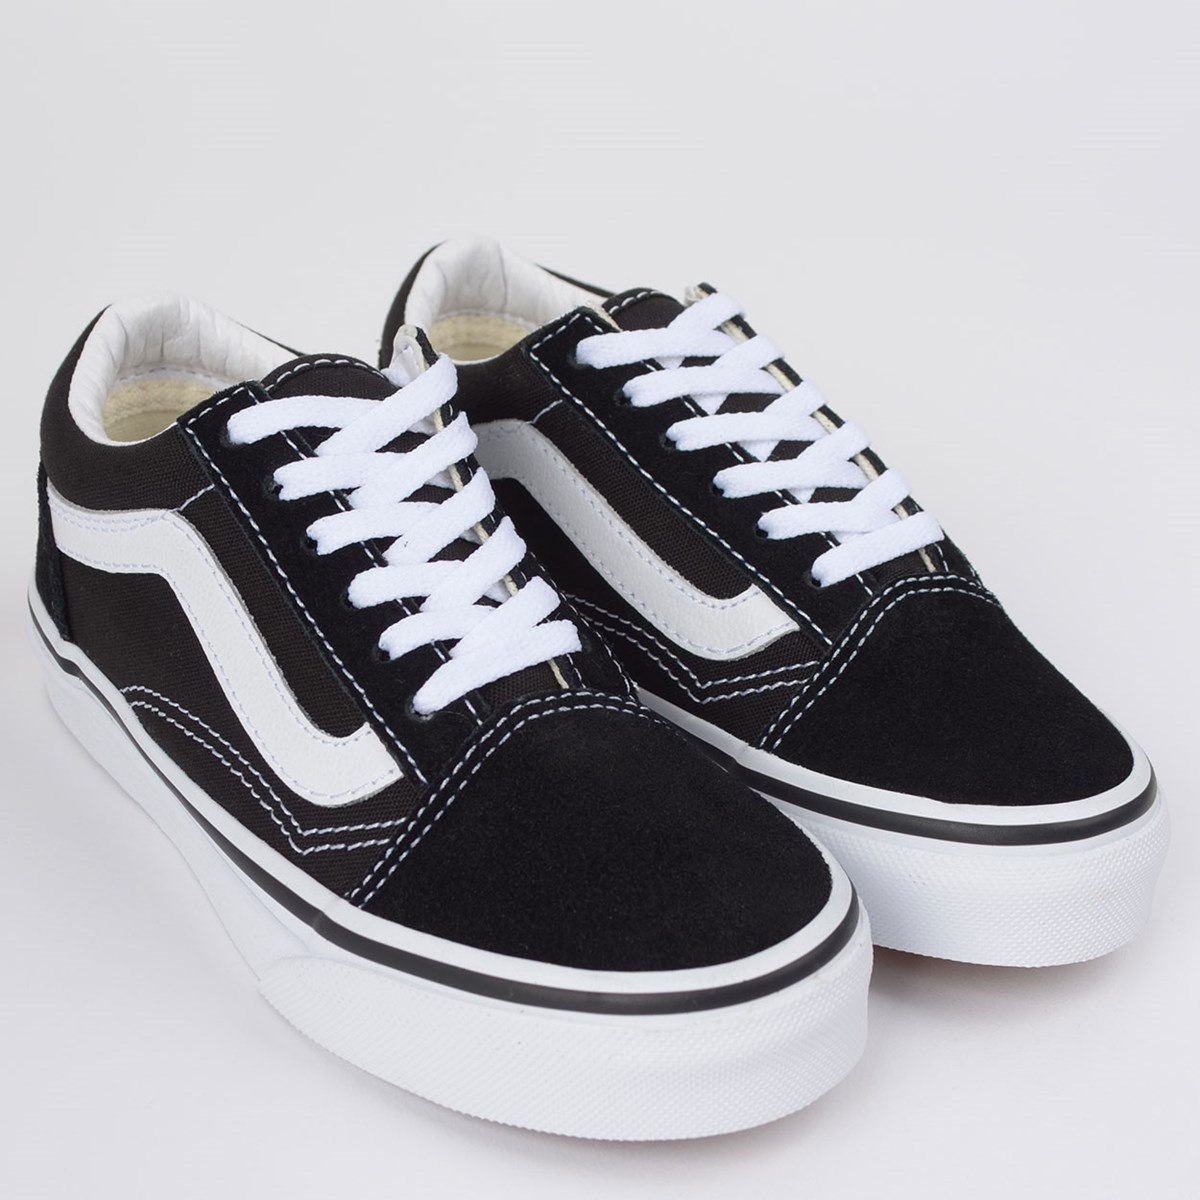 Tênis Vans Kids Old Skool Black True White VN000W9T6BT